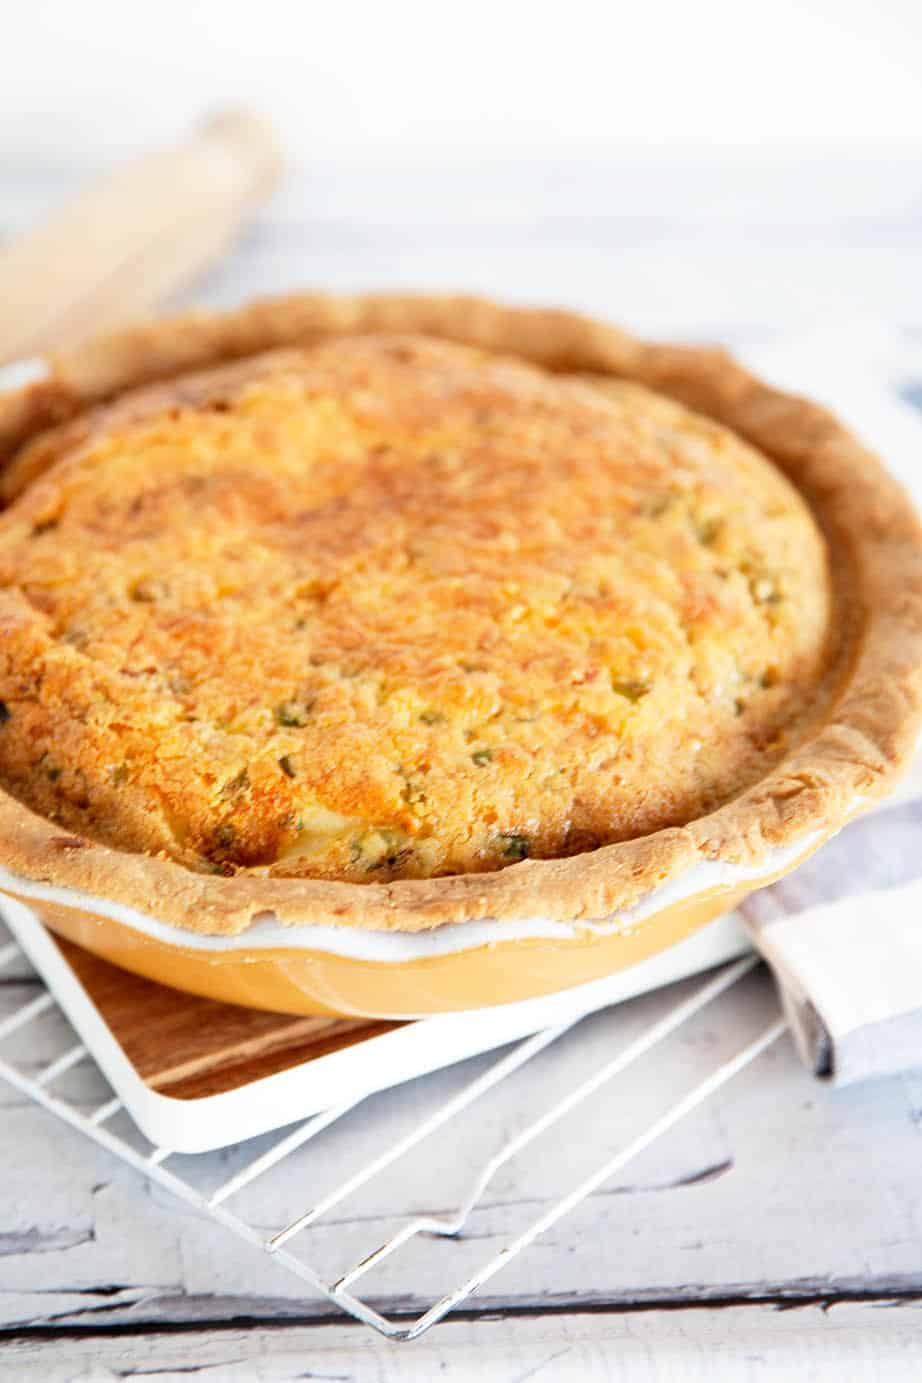 Portrait image of baked quiche Lorraine in a yellow pie dish on white cooling rack